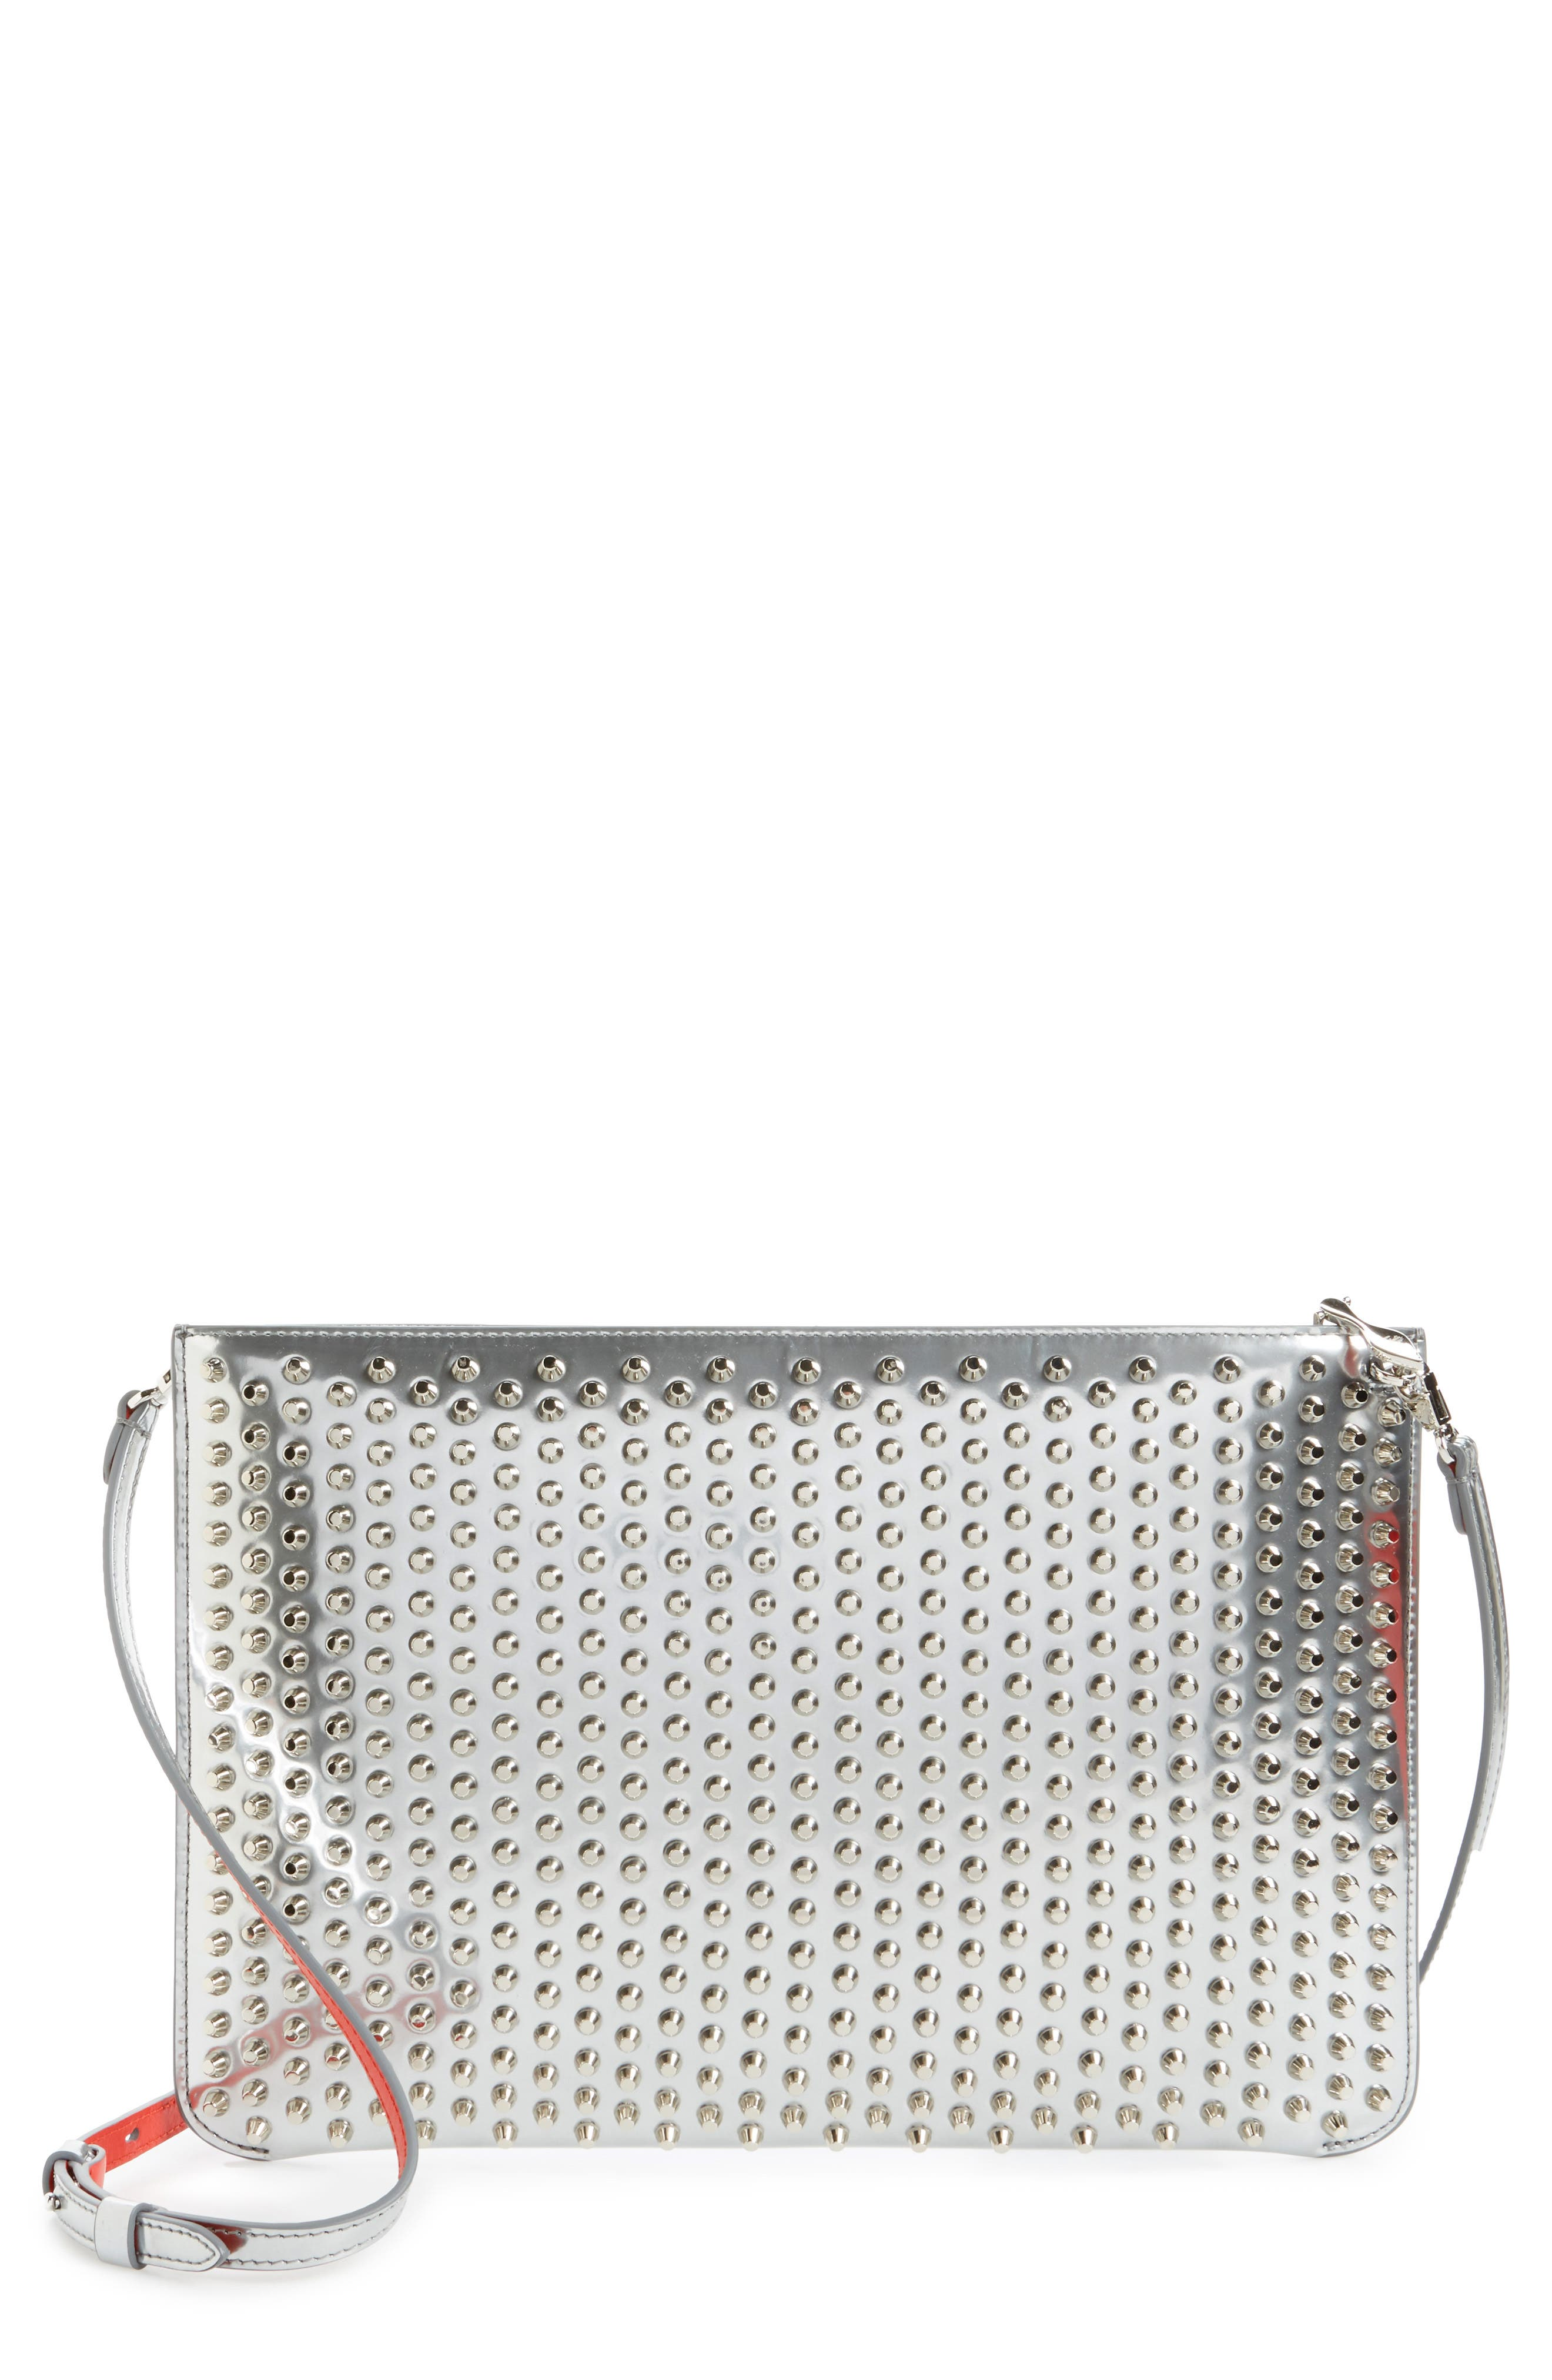 Loubiclutch Spiked Leather Clutch,                             Main thumbnail 1, color,                             040